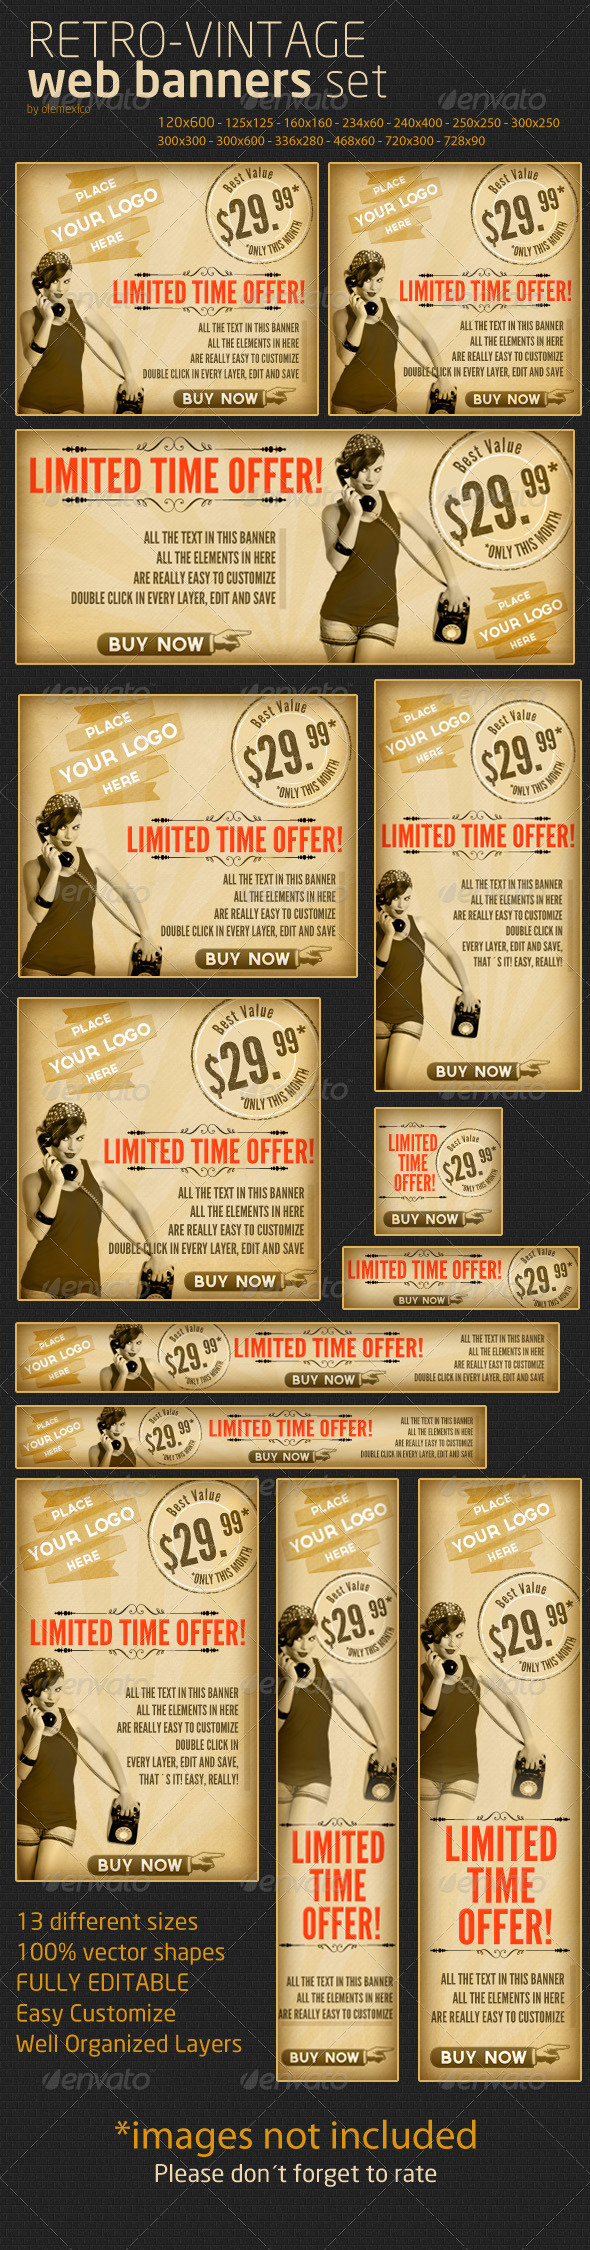 Retro-Vintage Web Banner Set